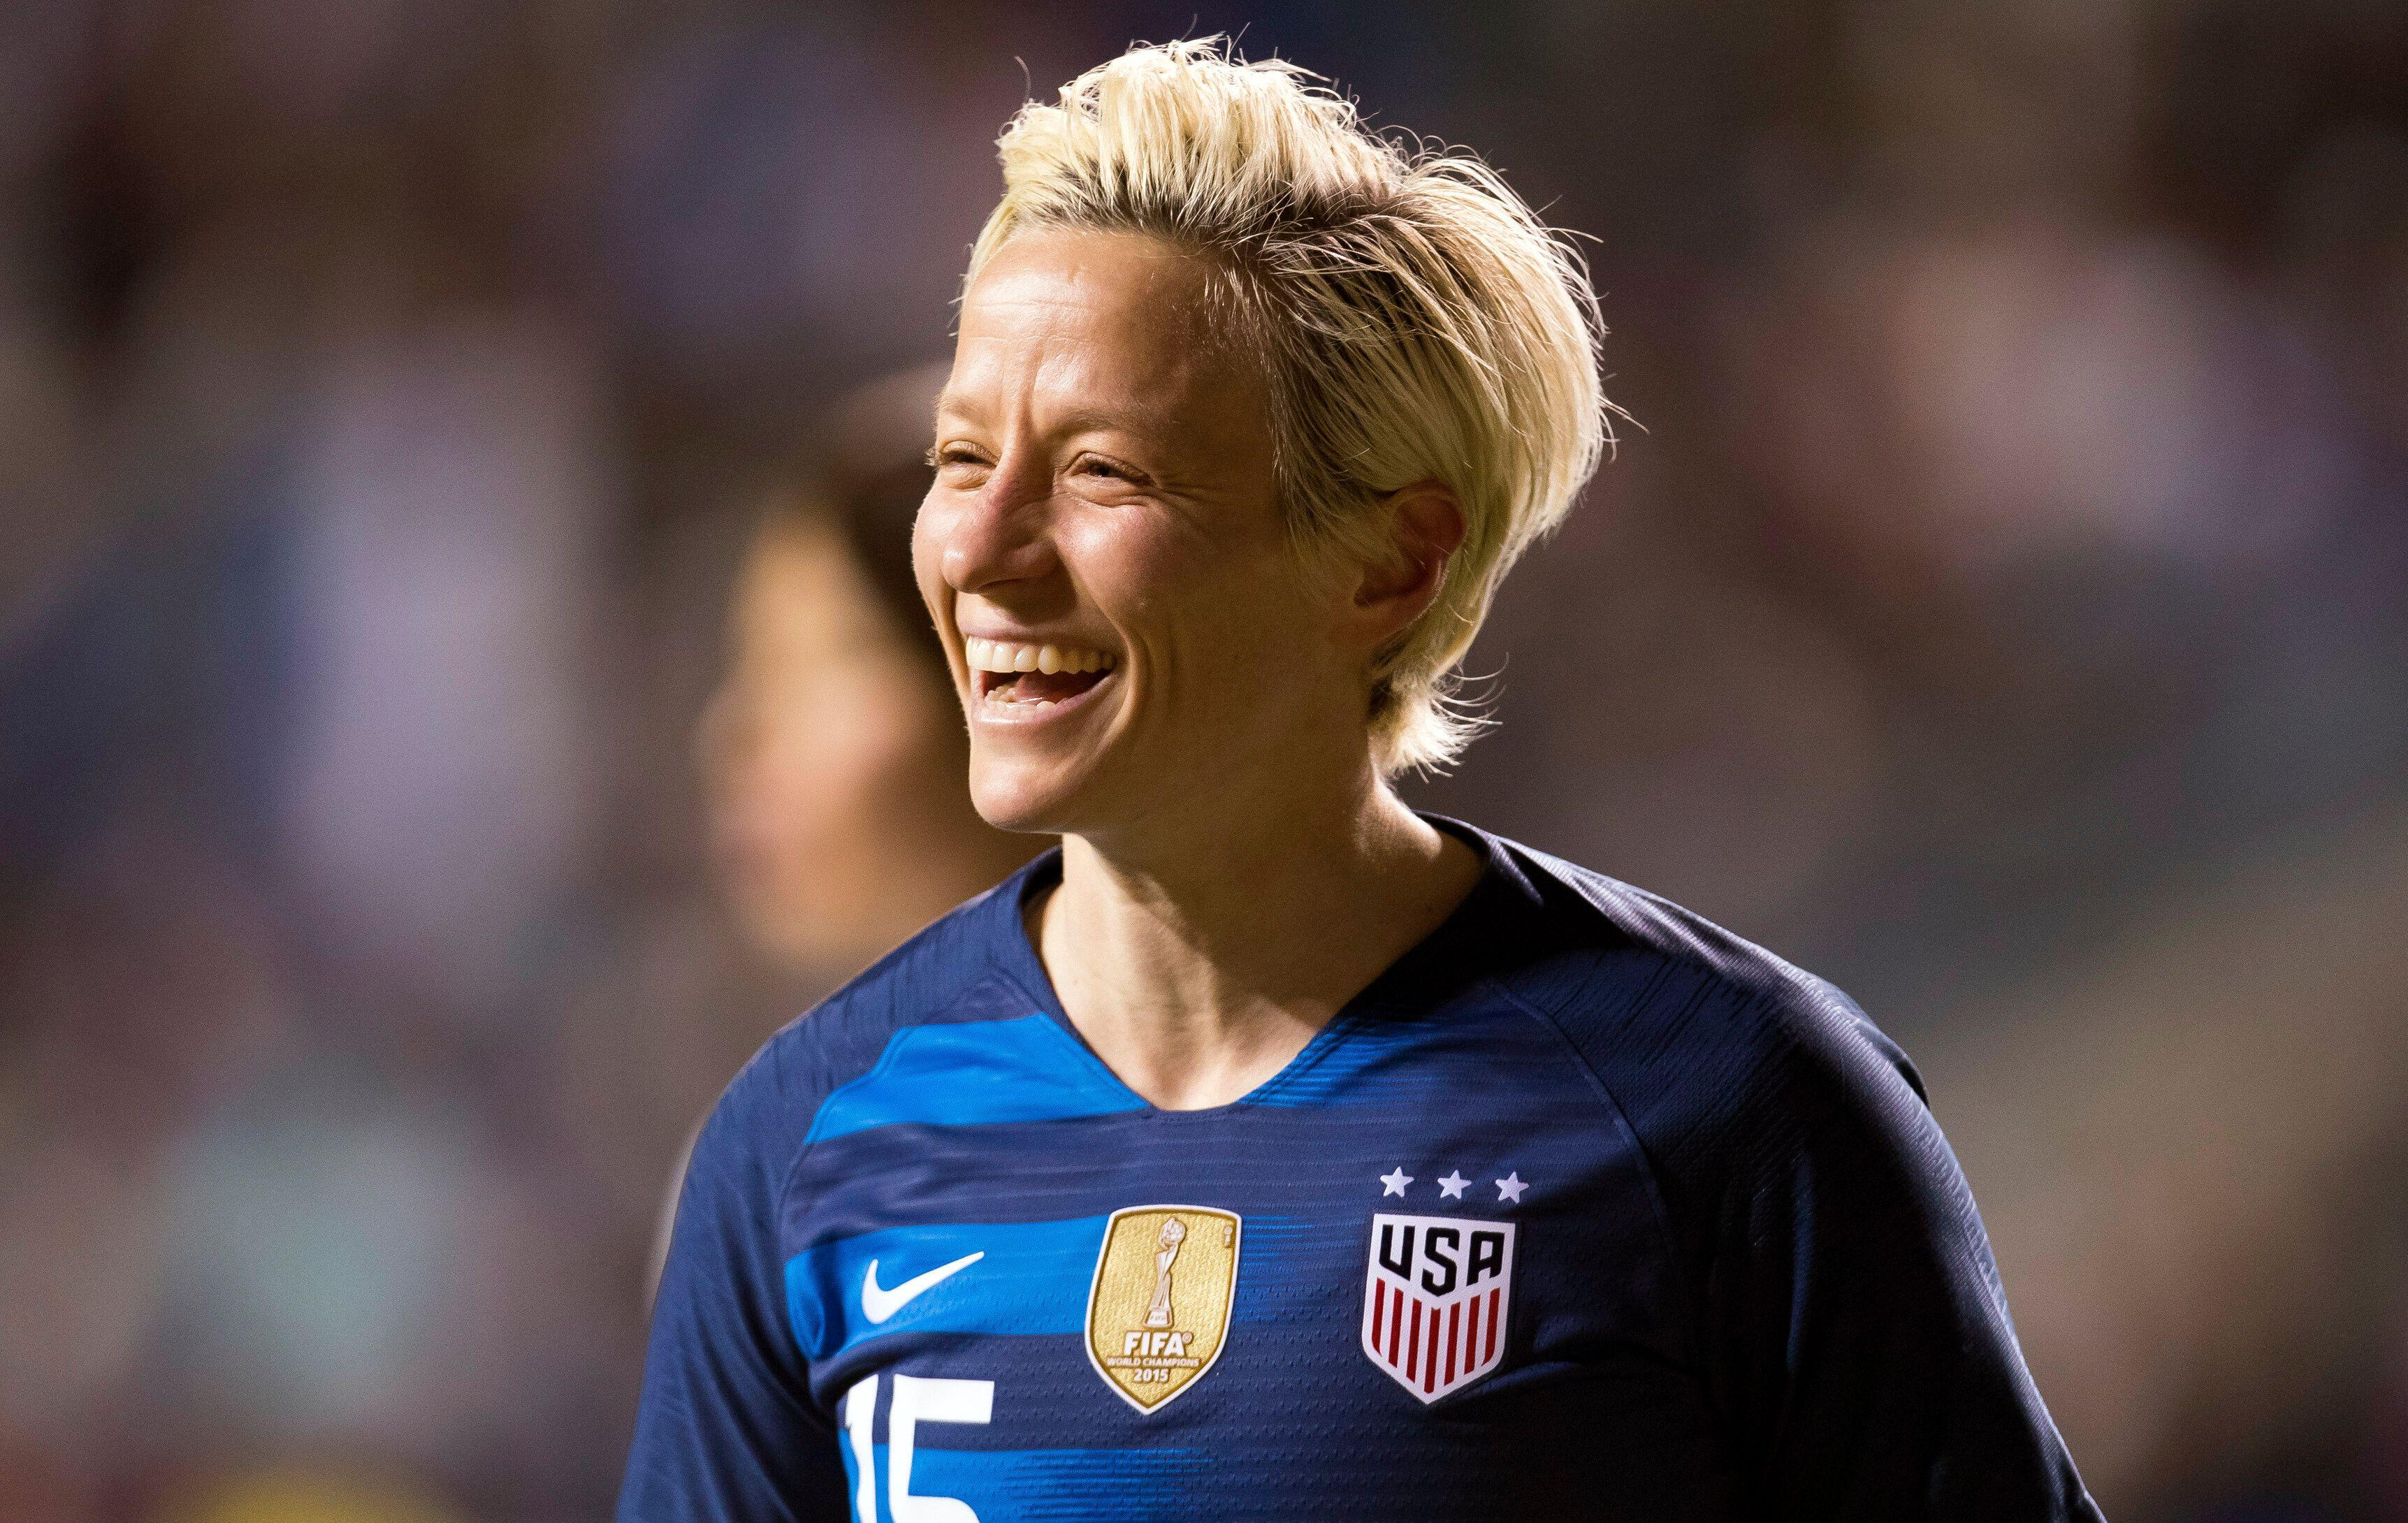 Megan Rapinoe First Openly Gay Woman Posing For Sis Swimsuit Issue